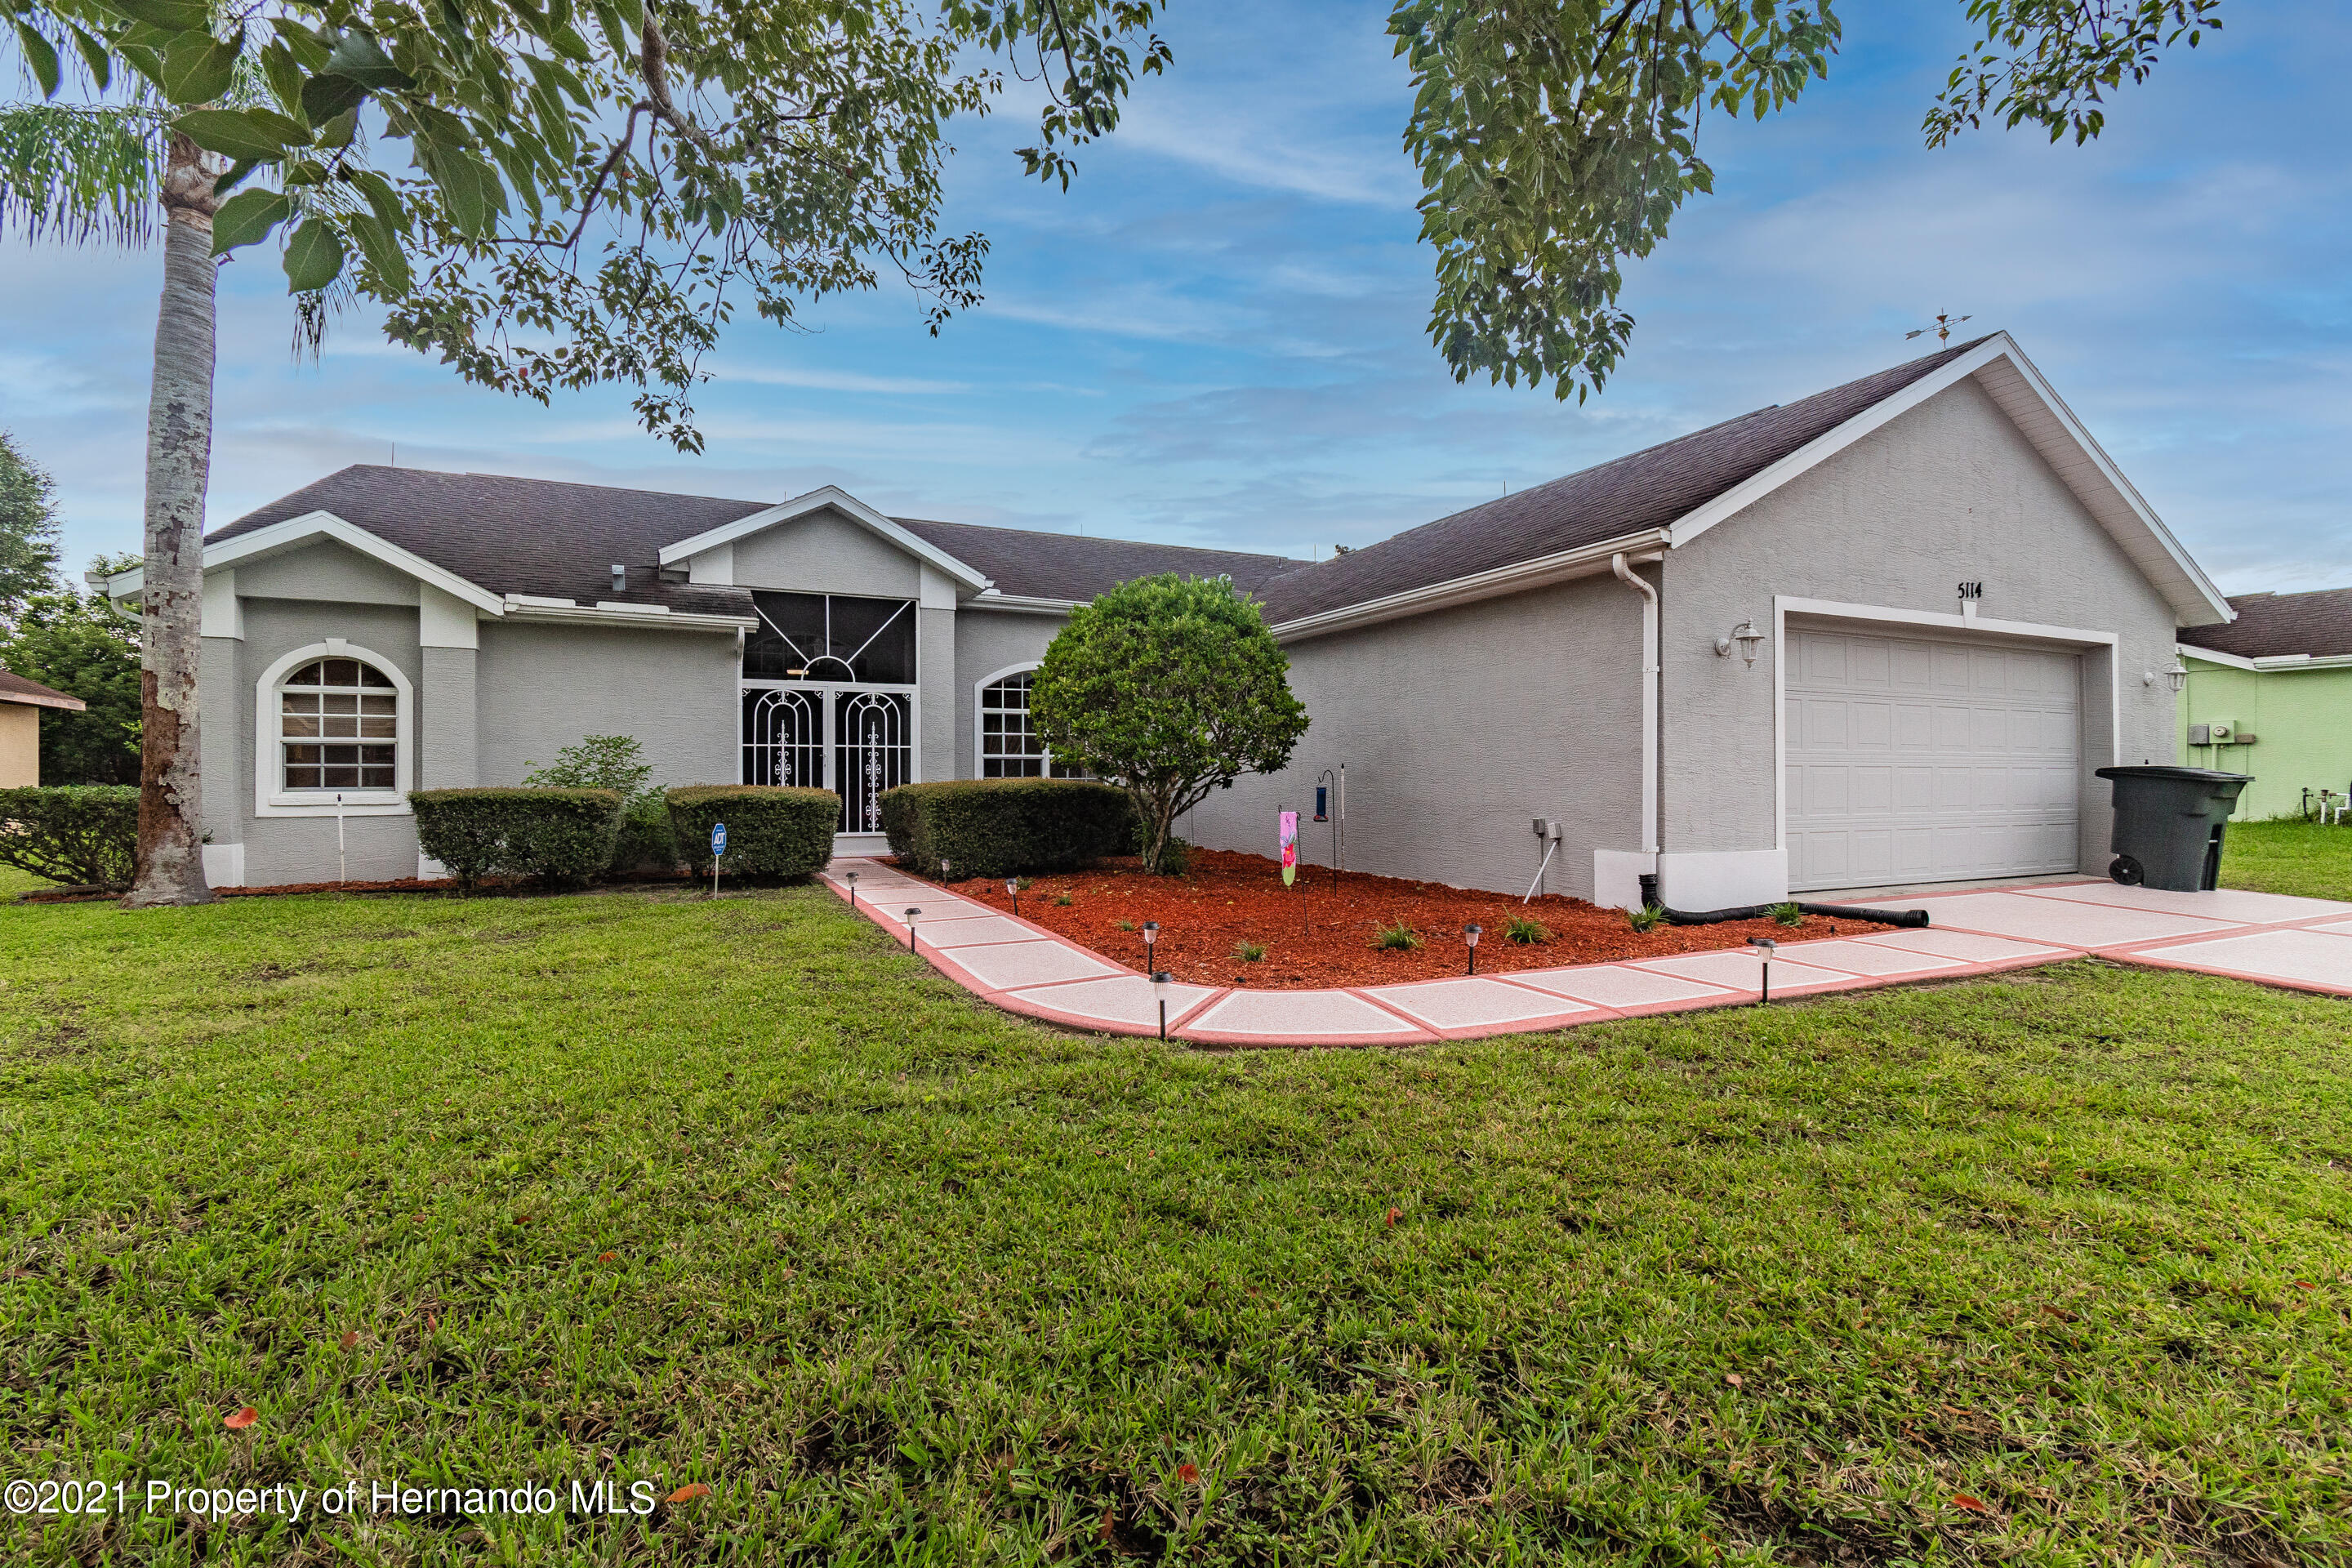 Details for 5114 Silhouette Court, Spring Hill, FL 34607